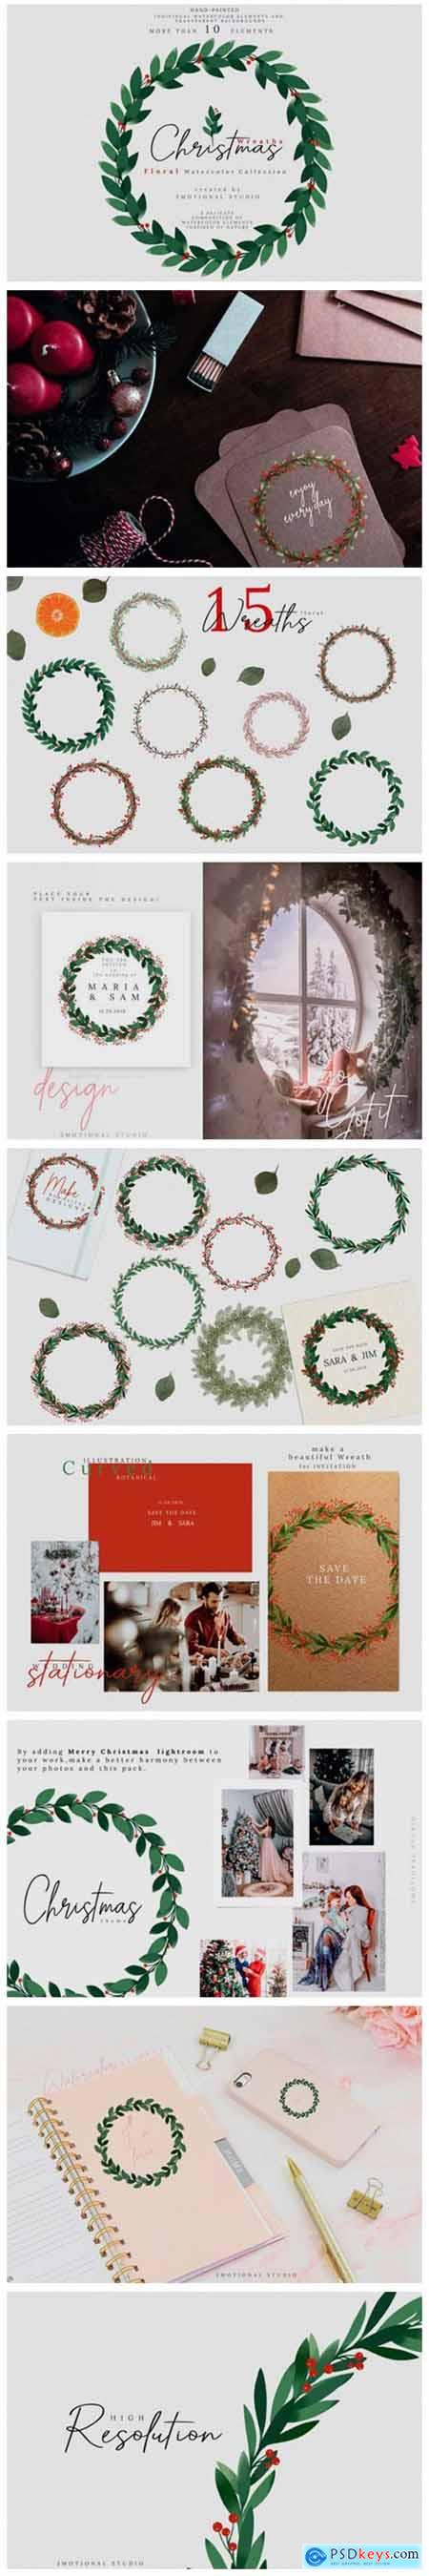 Christmas Watercolor Wreaths Collection 2142617